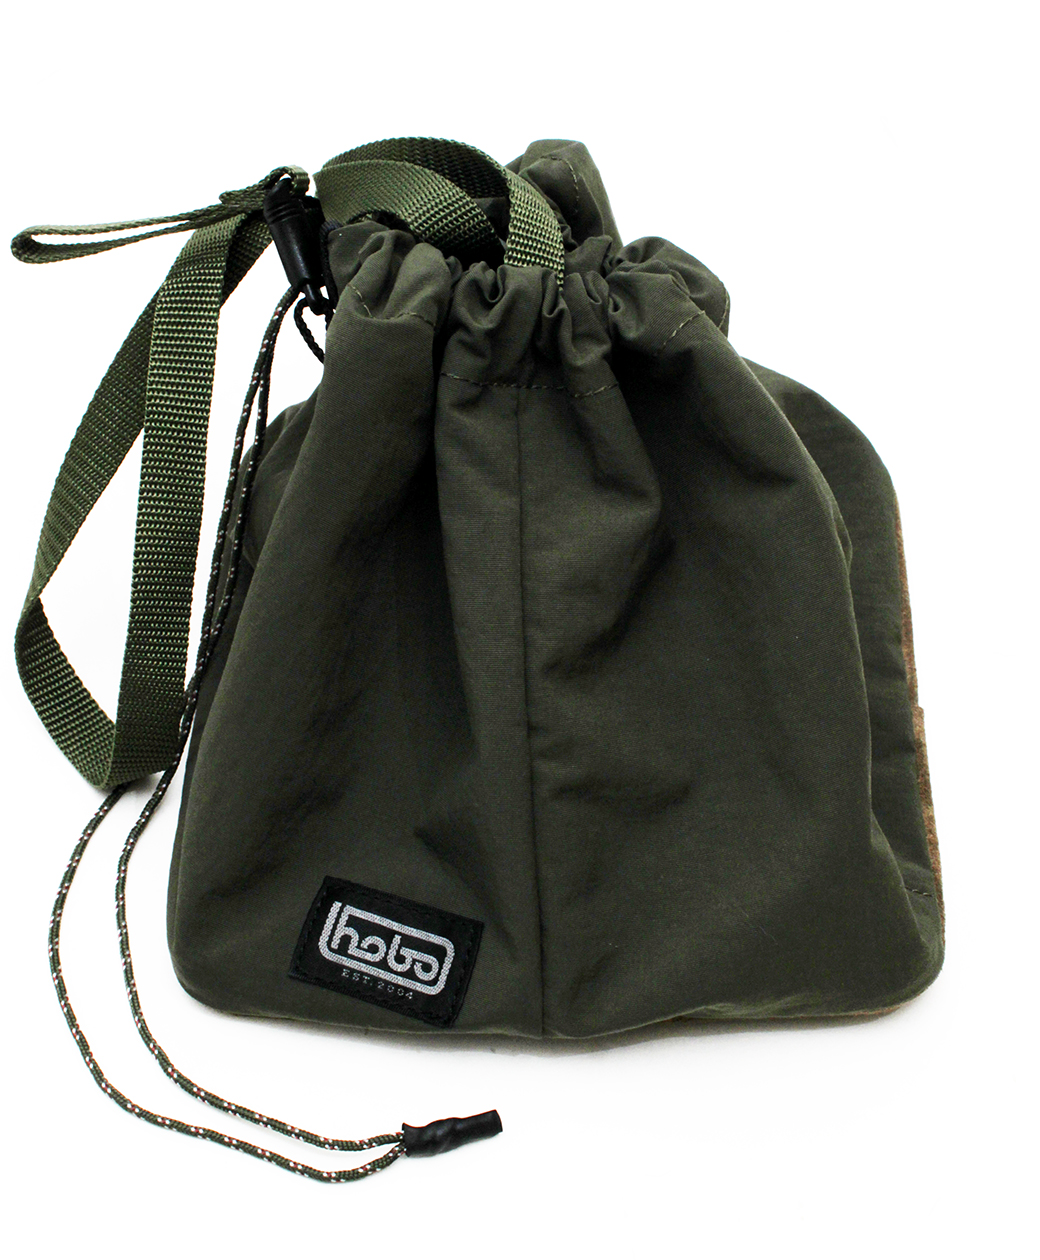 hobo NYLON TUSSAH DRAWSTRING SHOULDER BAG(OLIVE)